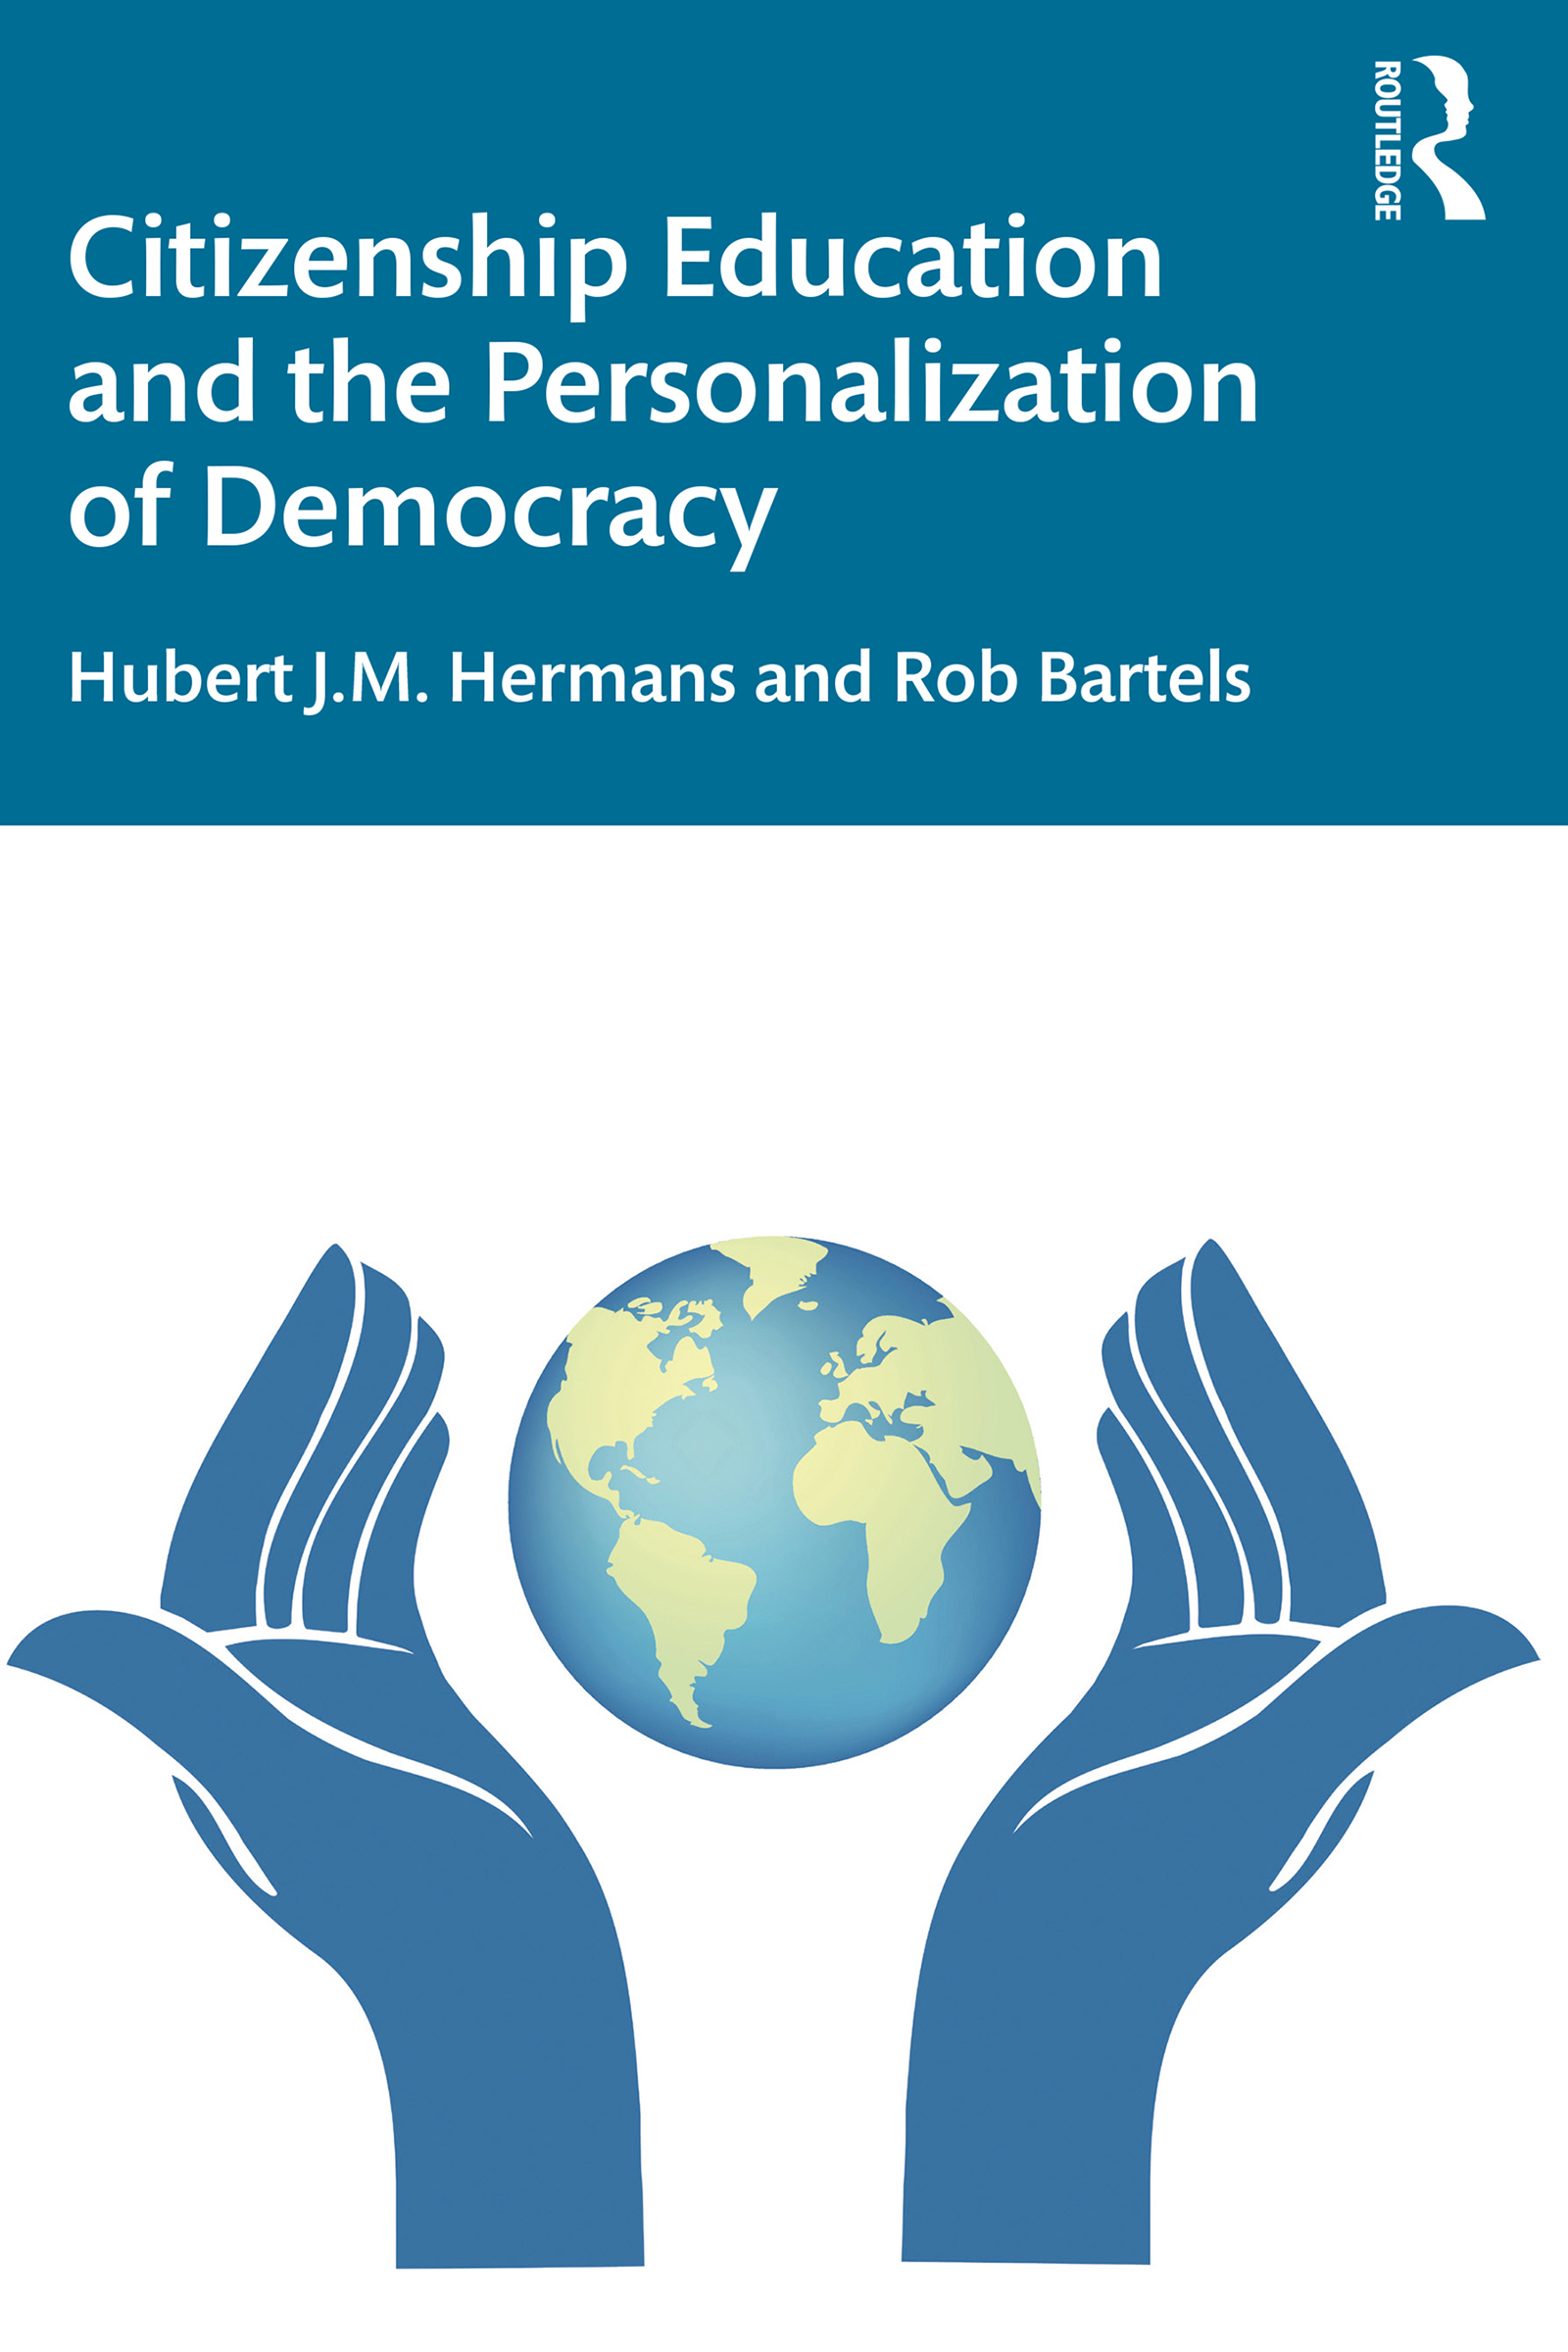 What Obstructs our Inner Democracy?